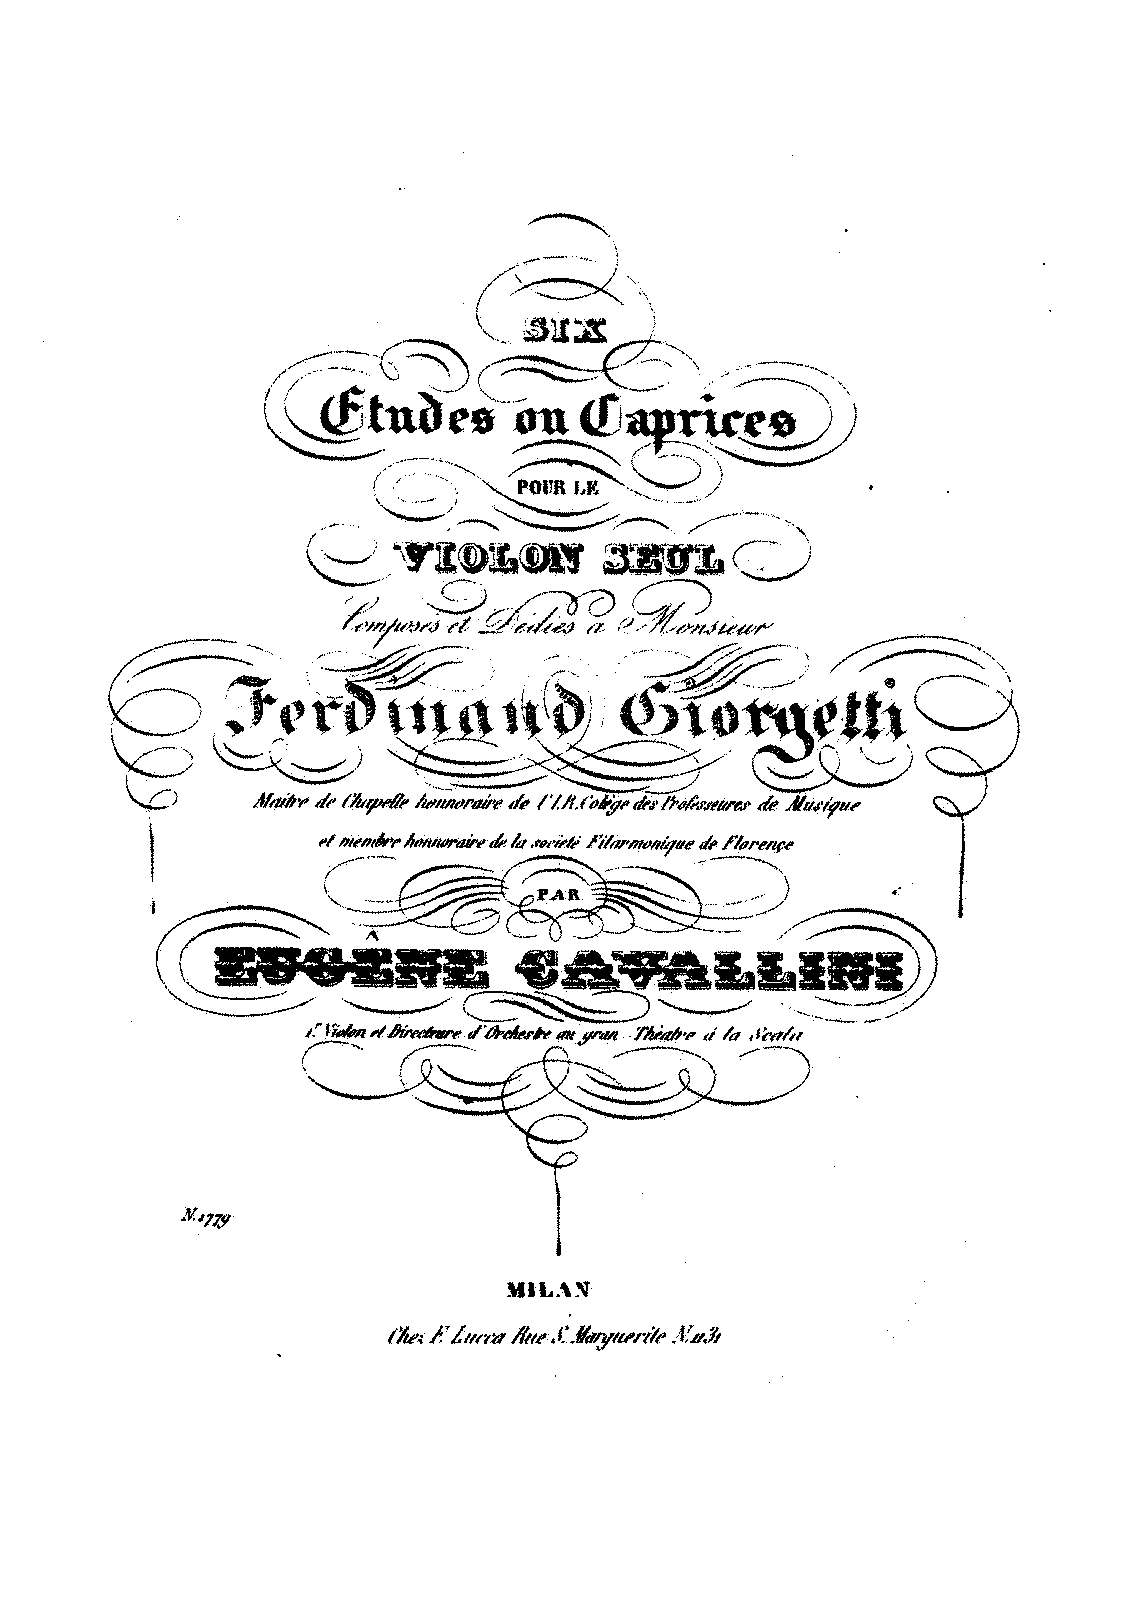 PMLP120809-Cavallini 6 Caprices for Violin.pdf